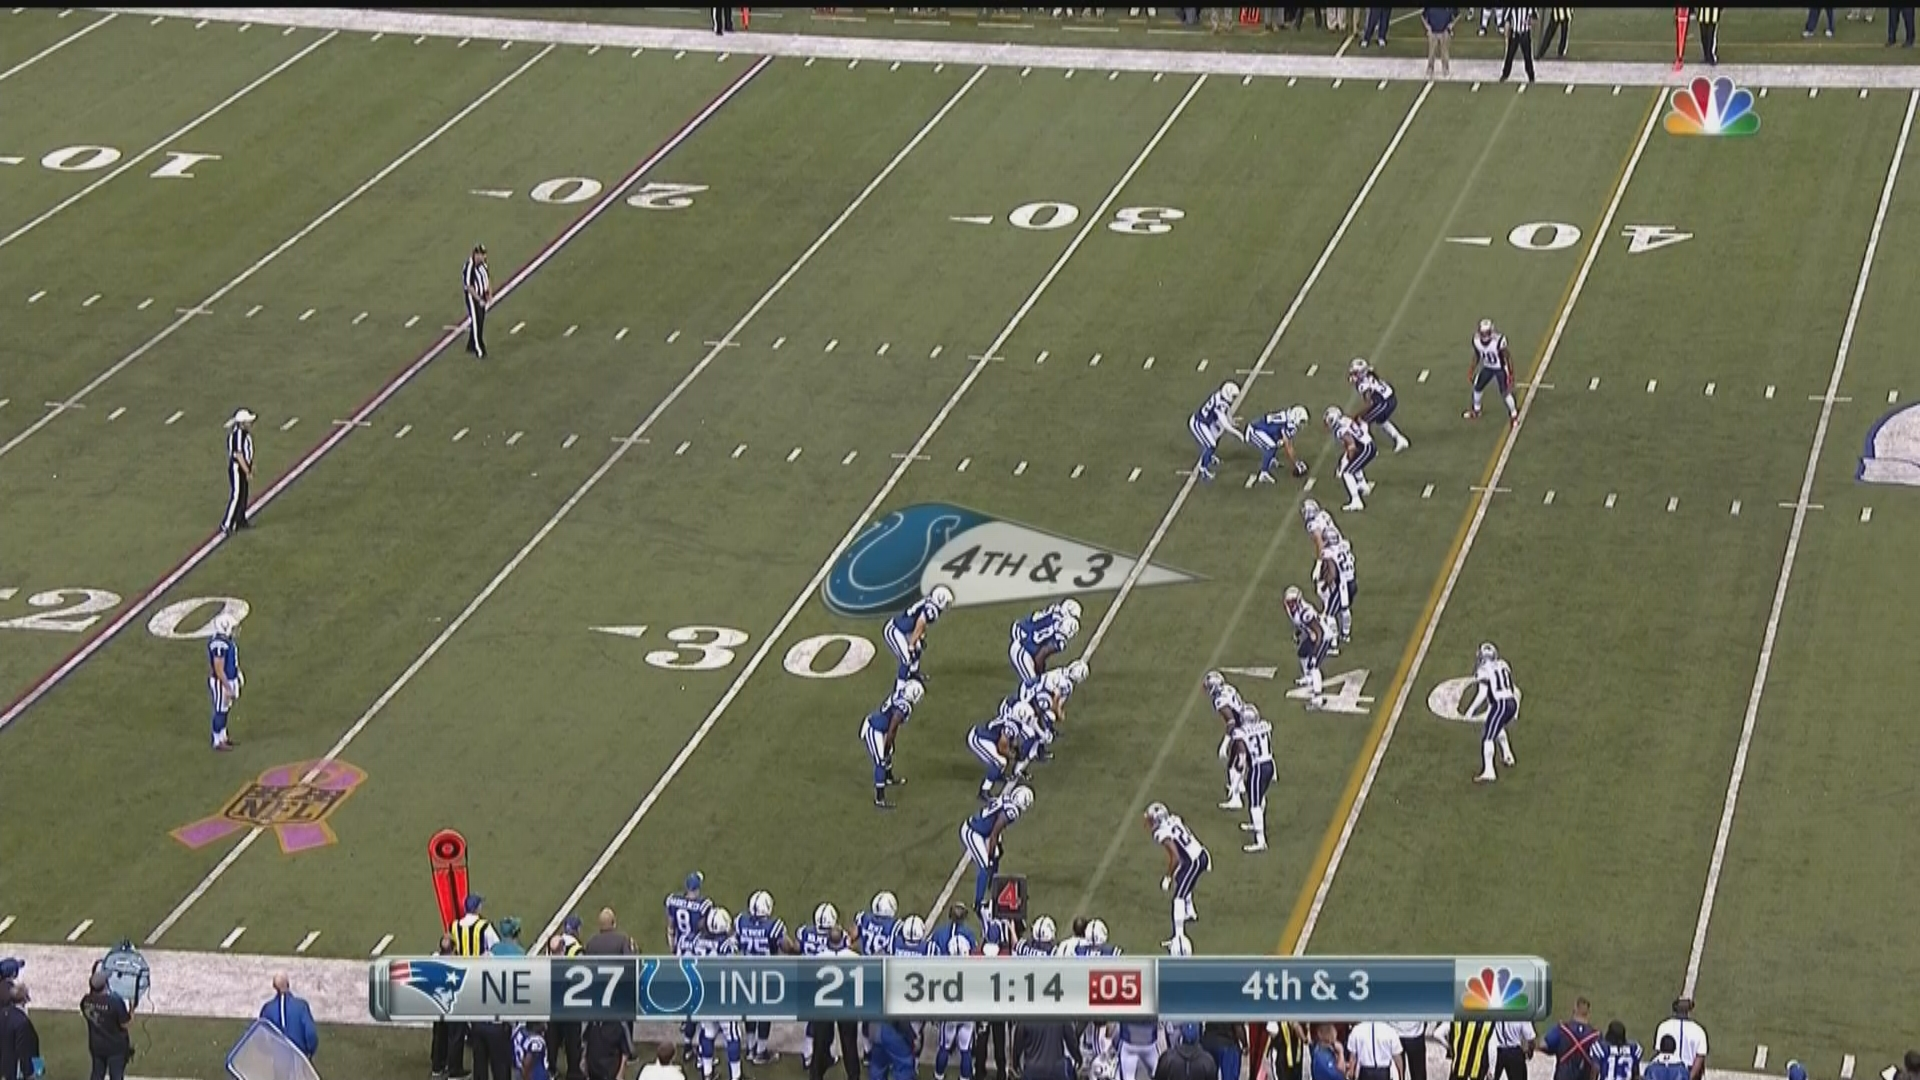 The Colts ran what may be the worst trick play in NFL history